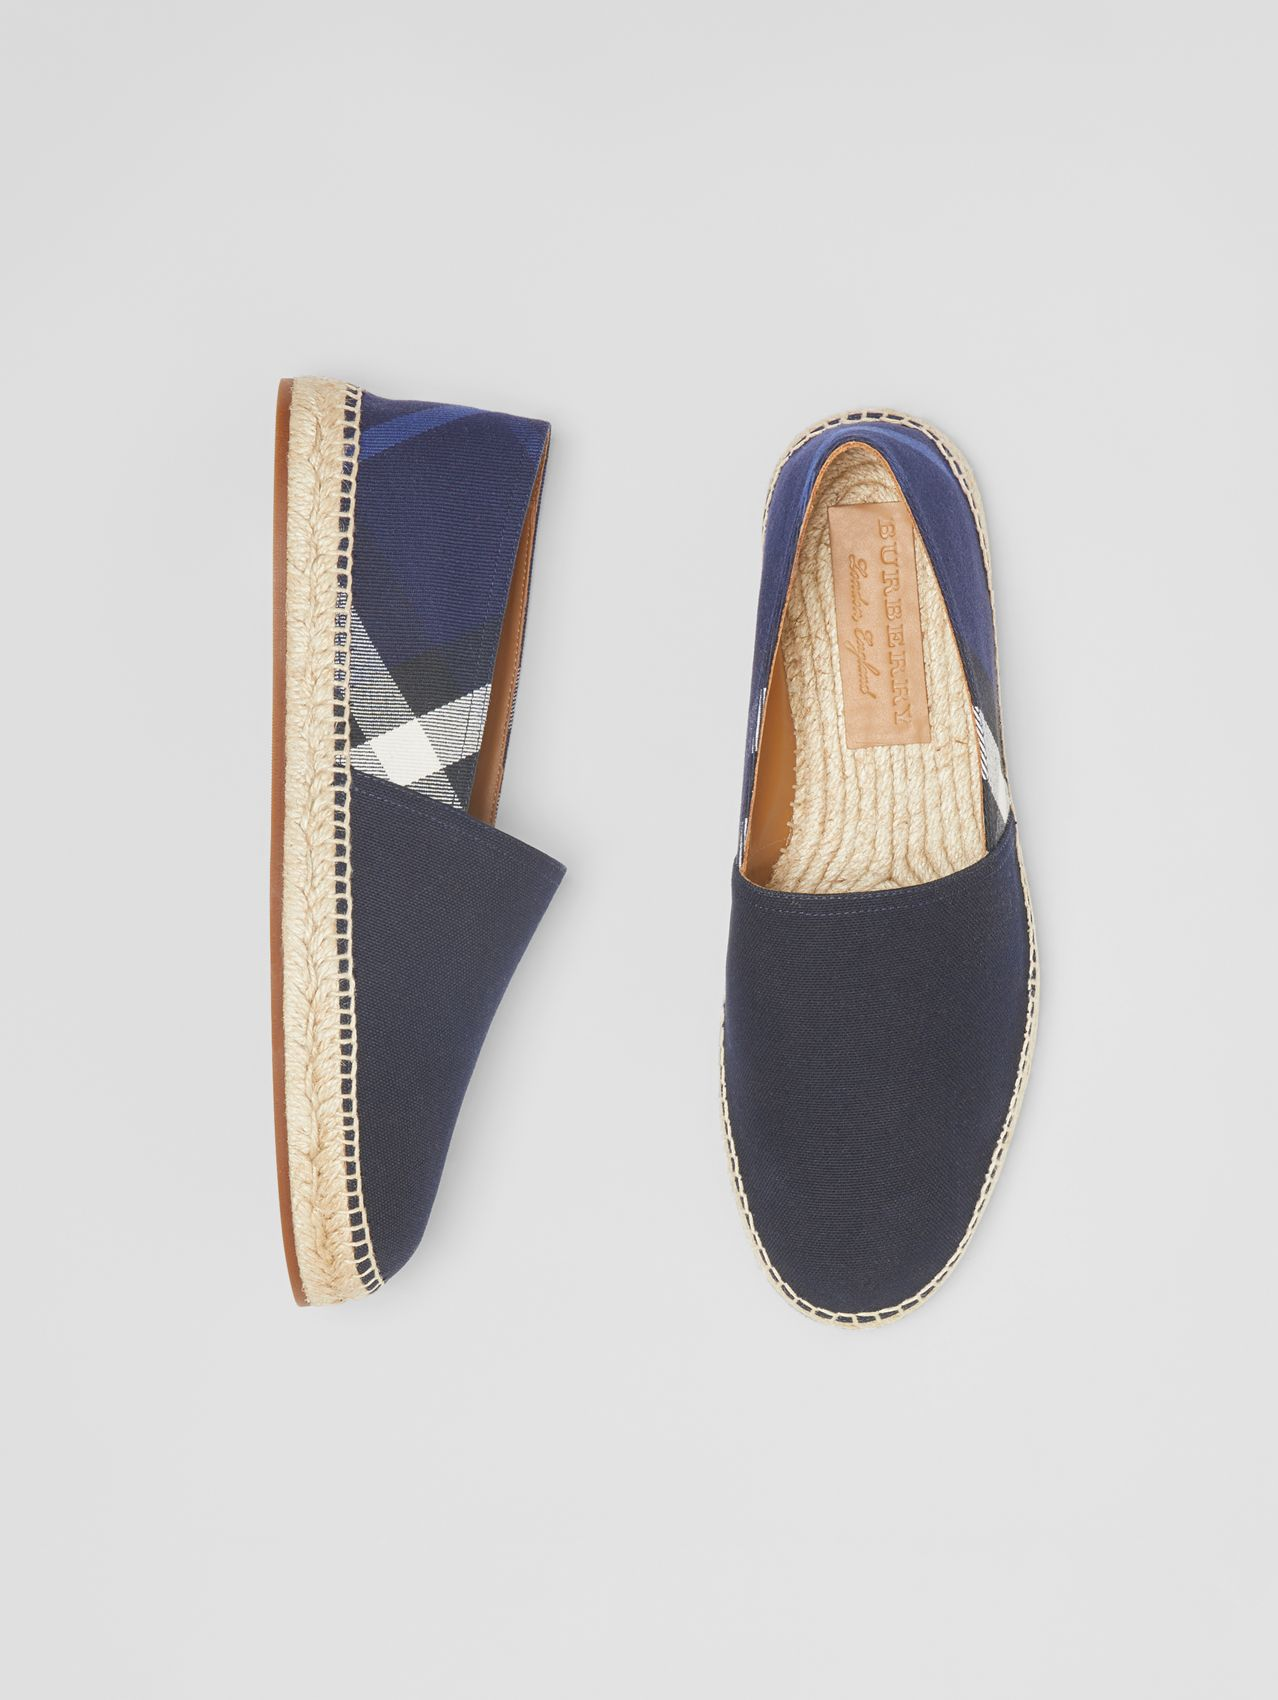 Overdyed House Check and Cotton Canvas Espadrilles in Indigo Blue